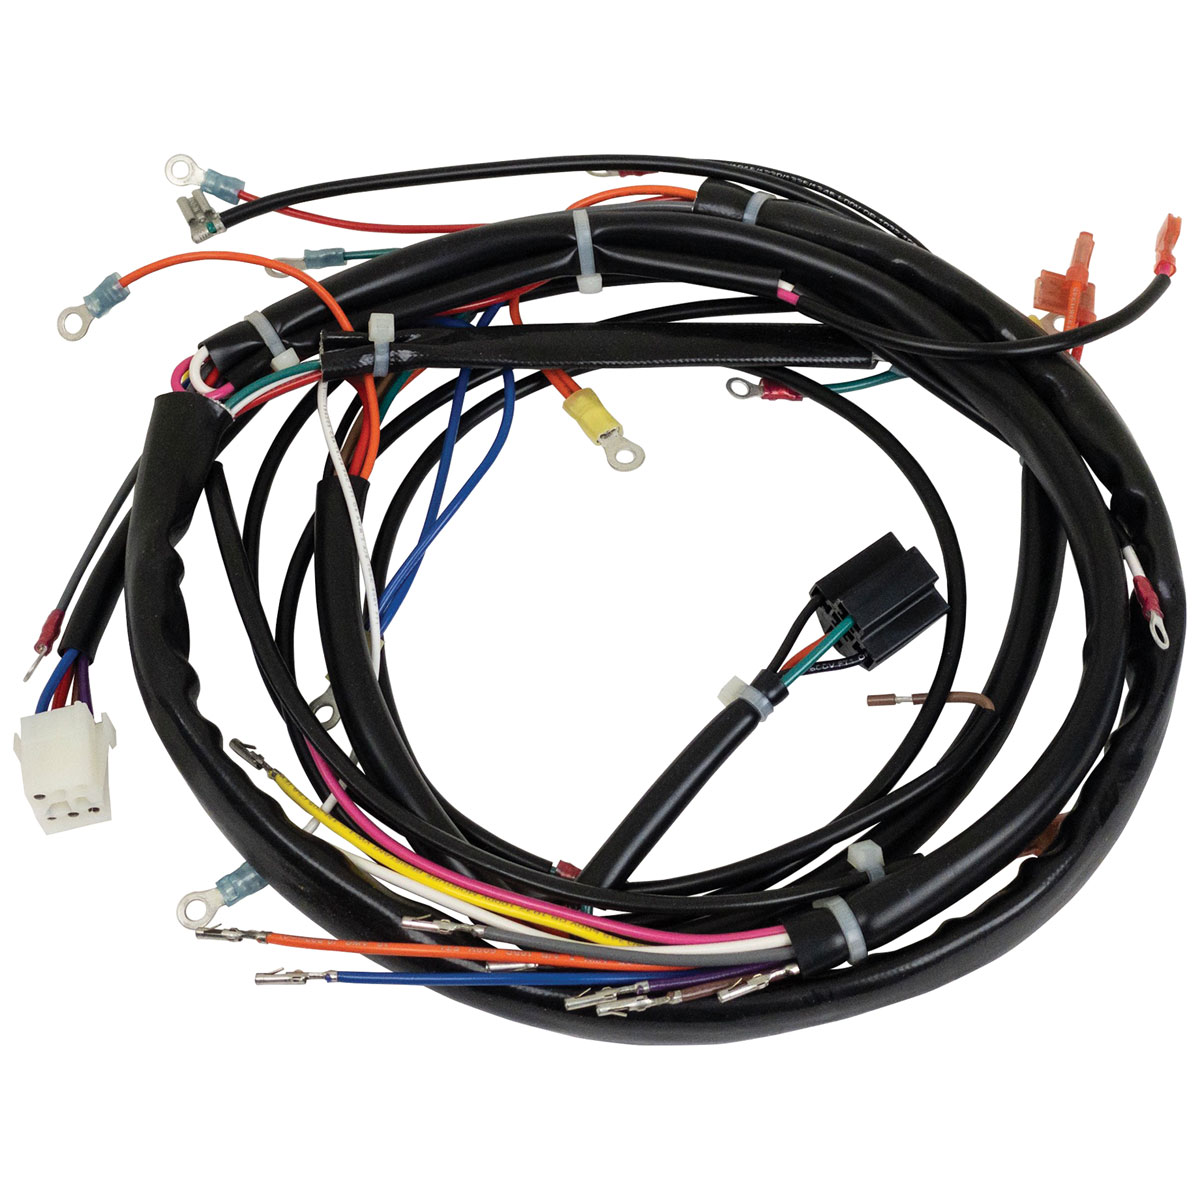 Bruce Linsday Company Main Wiring Harness